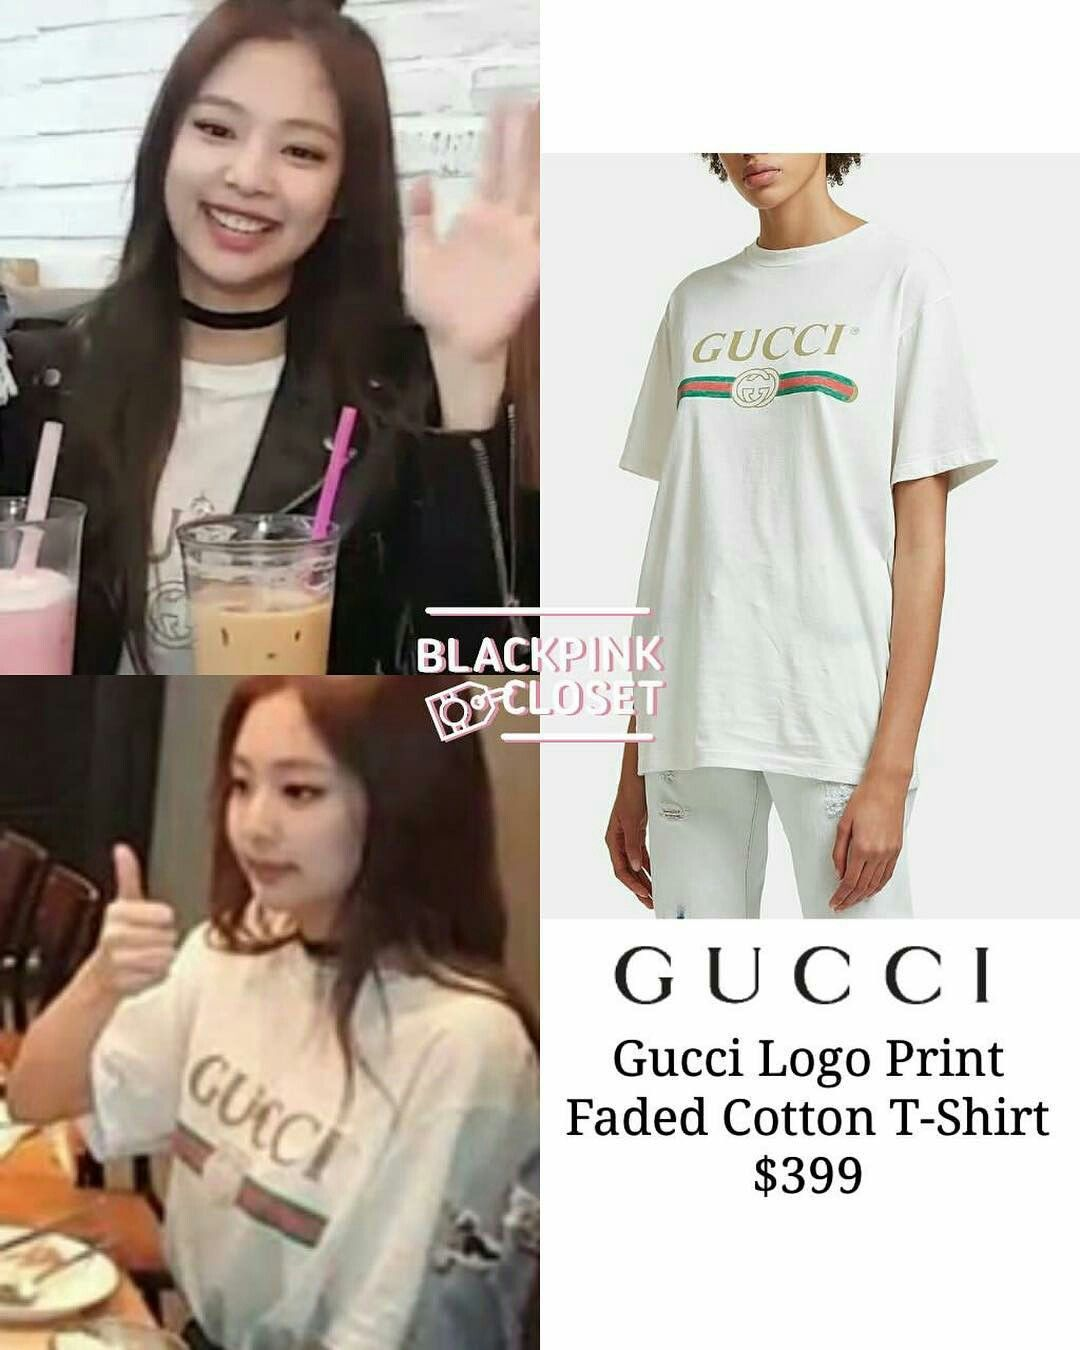 afee68fd9b5 Blackpink jennie fashion  gucci  tshirt  kpopfashion  yg  blackpinkfashion   stay  whistle  boombayah  asifitsyourlast  blackpinkfashion  jennie